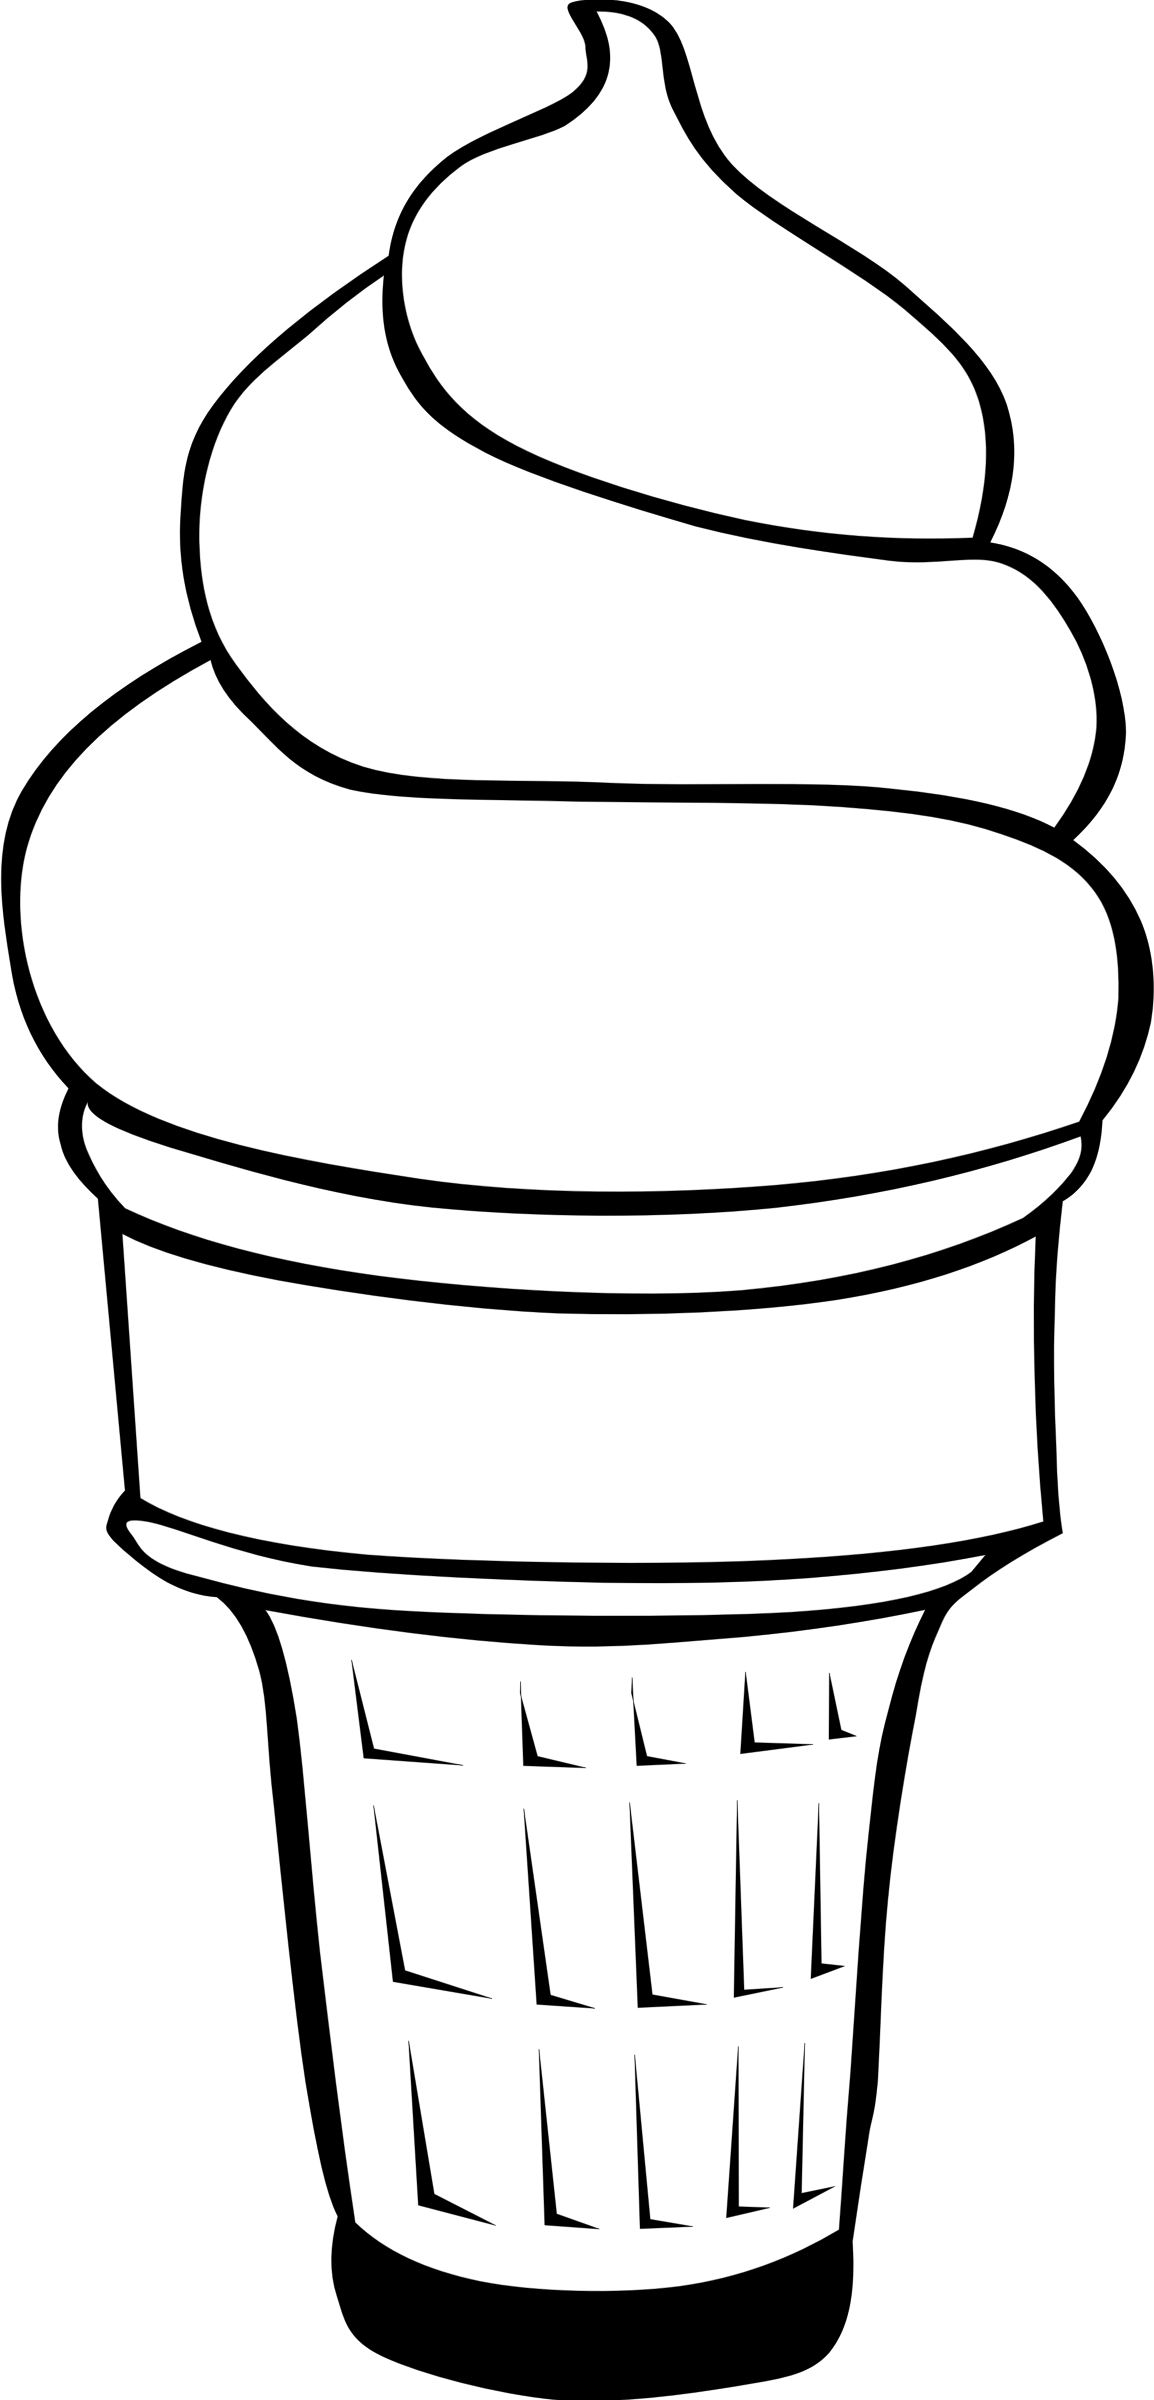 ice cream cone line drawing at getdrawings com free for personal rh getdrawings com ice cream truck clipart black and white eating ice cream clipart black and white